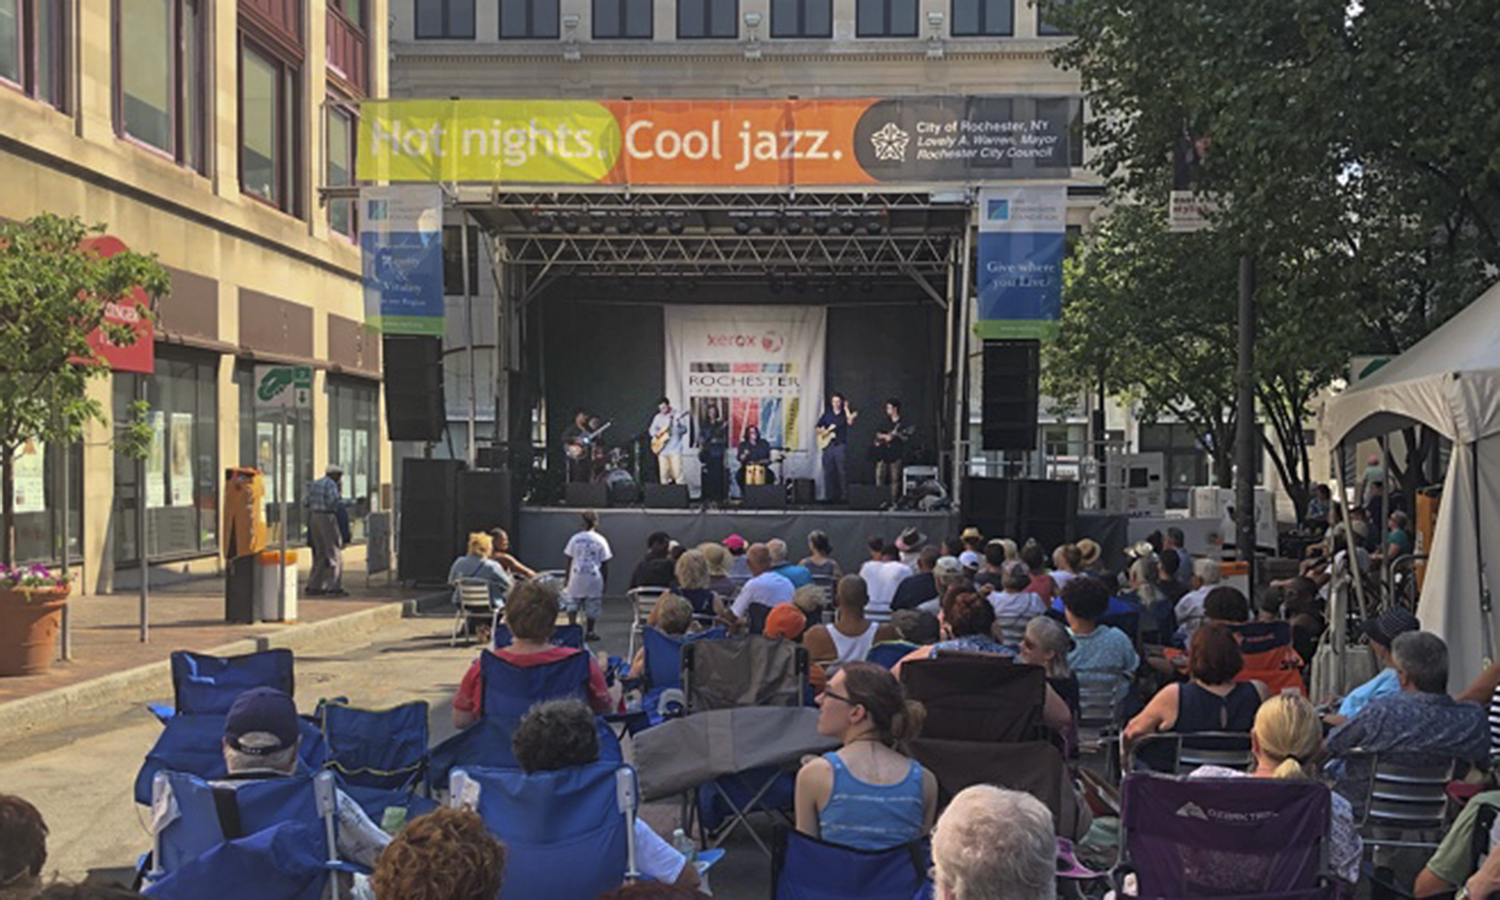 Members of the HWS Jazz Guitar Ensemble perform at the 2018 Xerox Rochester International Jazz Festival, led by Applied Instructor of Music Greg Wachala. The students include guitarists Michael Bruno '19 and Bradley Stewart '19, drummer Nick LaDuca '19 and percussionist Orson Sproule '21 and bass guitarist Jasper White '20.